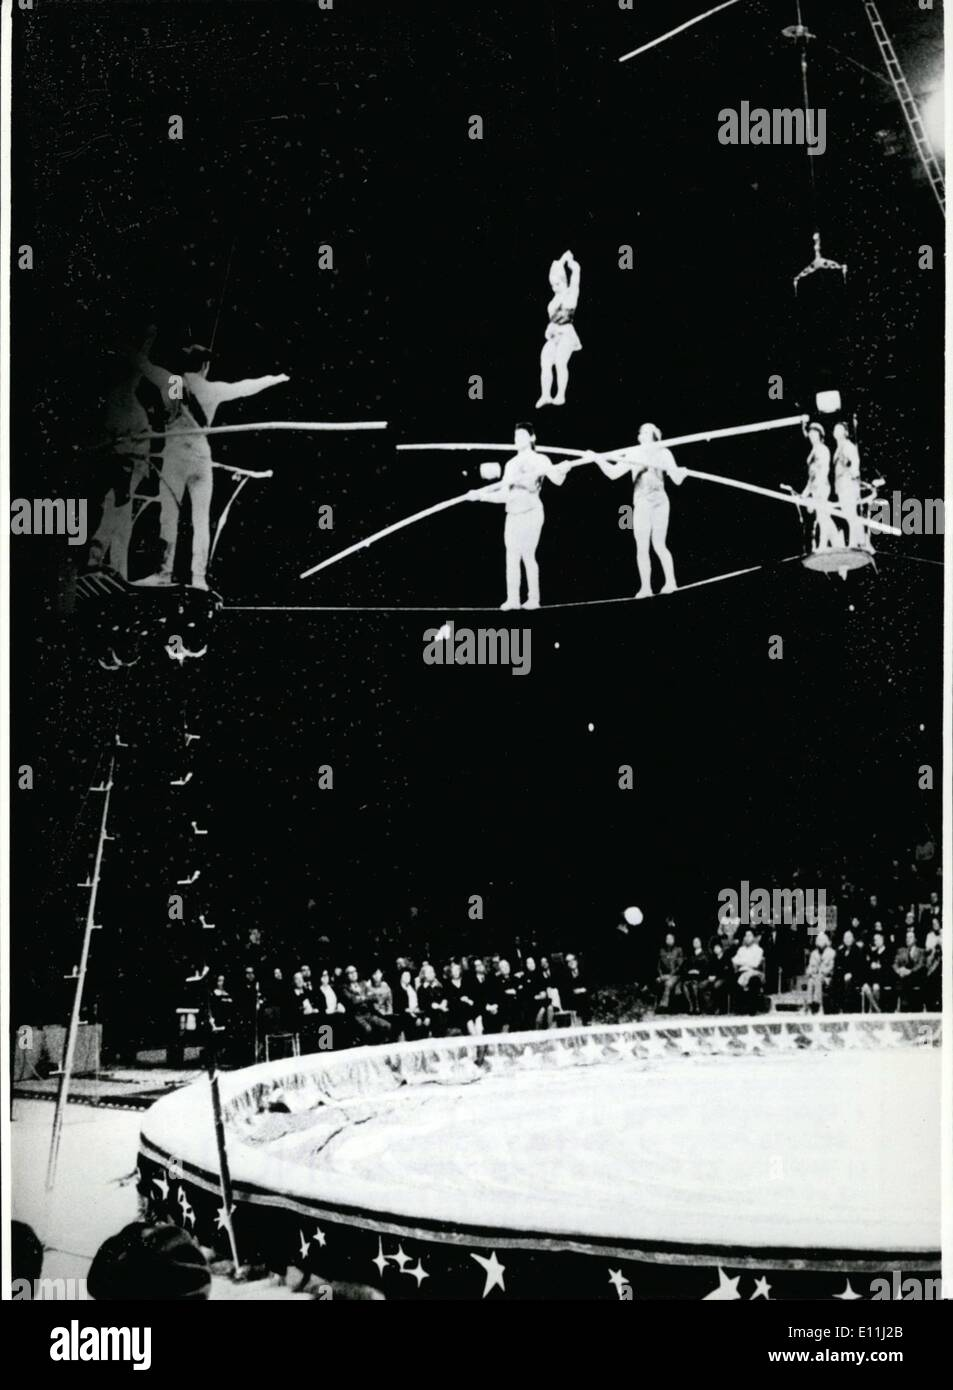 Apr. 04, 1978 - The Russian National Circus stars in Munich. To one of the best circus-programs of the world the inhabitants of Munich can look forward. From April 12th to 23rd, the Russian National Circus stars in the Olympic Hall. What the Soviet Union sends on tour to the West, is the best, and so the audience can look forward to the first-class performances of 80 artistes and their 100 animals - Stock Image